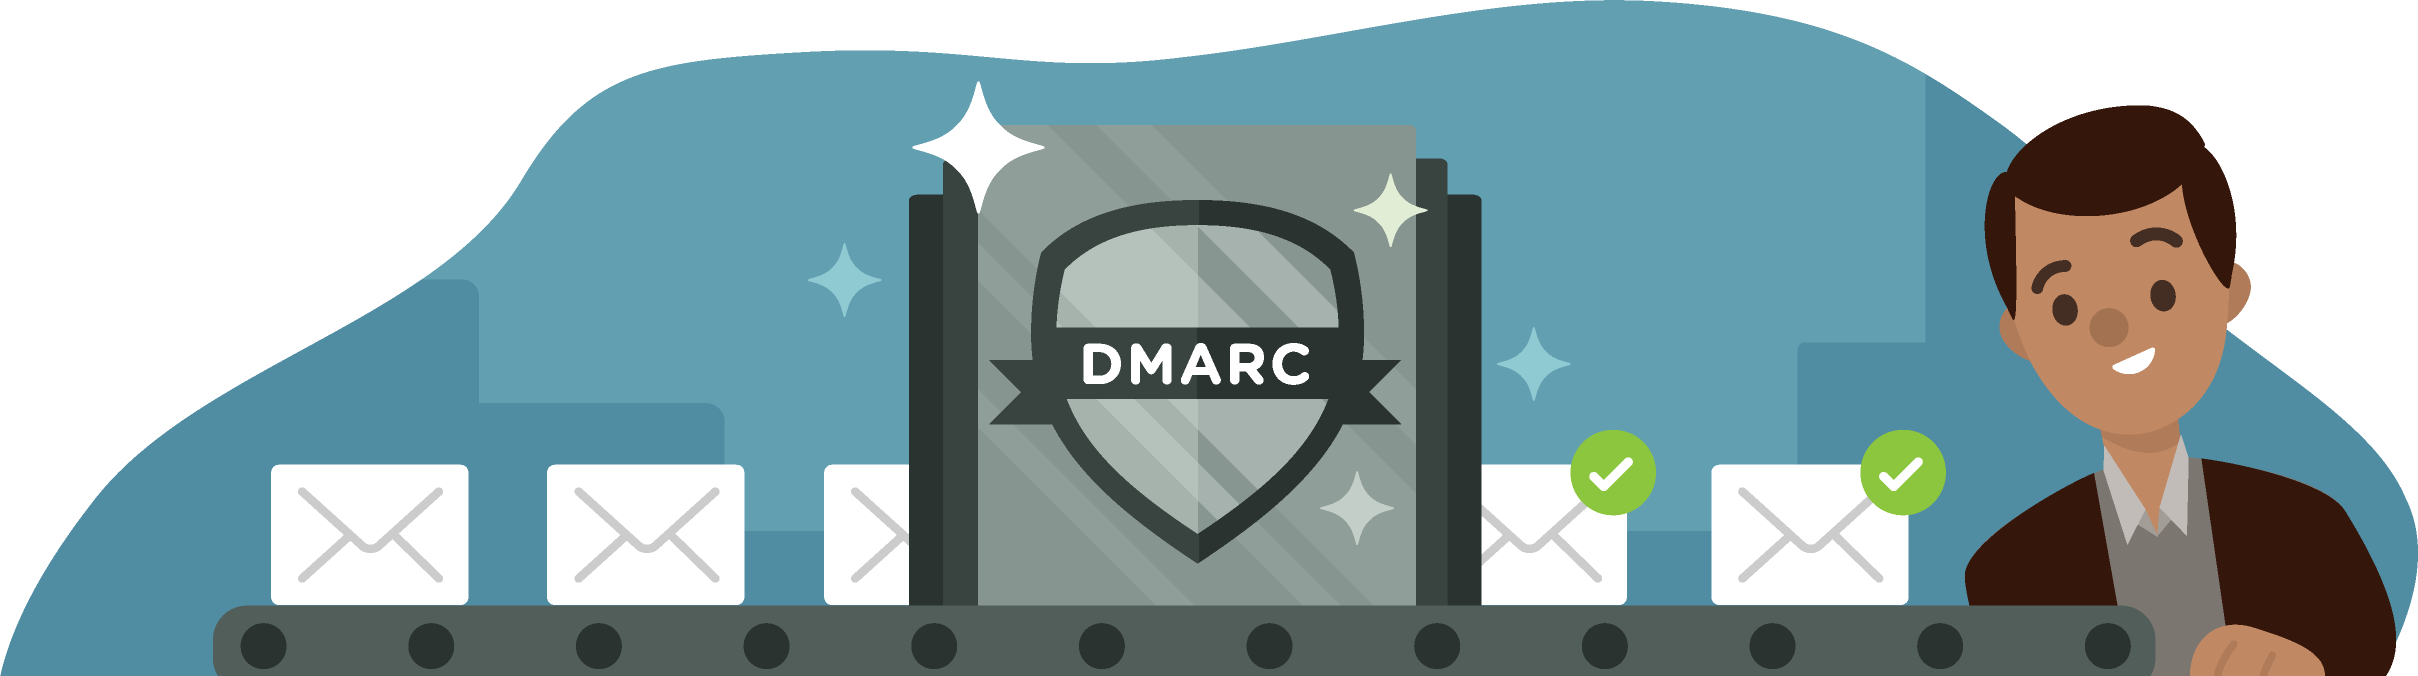 A factory line of email messages going through a DMARC process and then coming out with check marks showing they have been validated to a happy recipient.